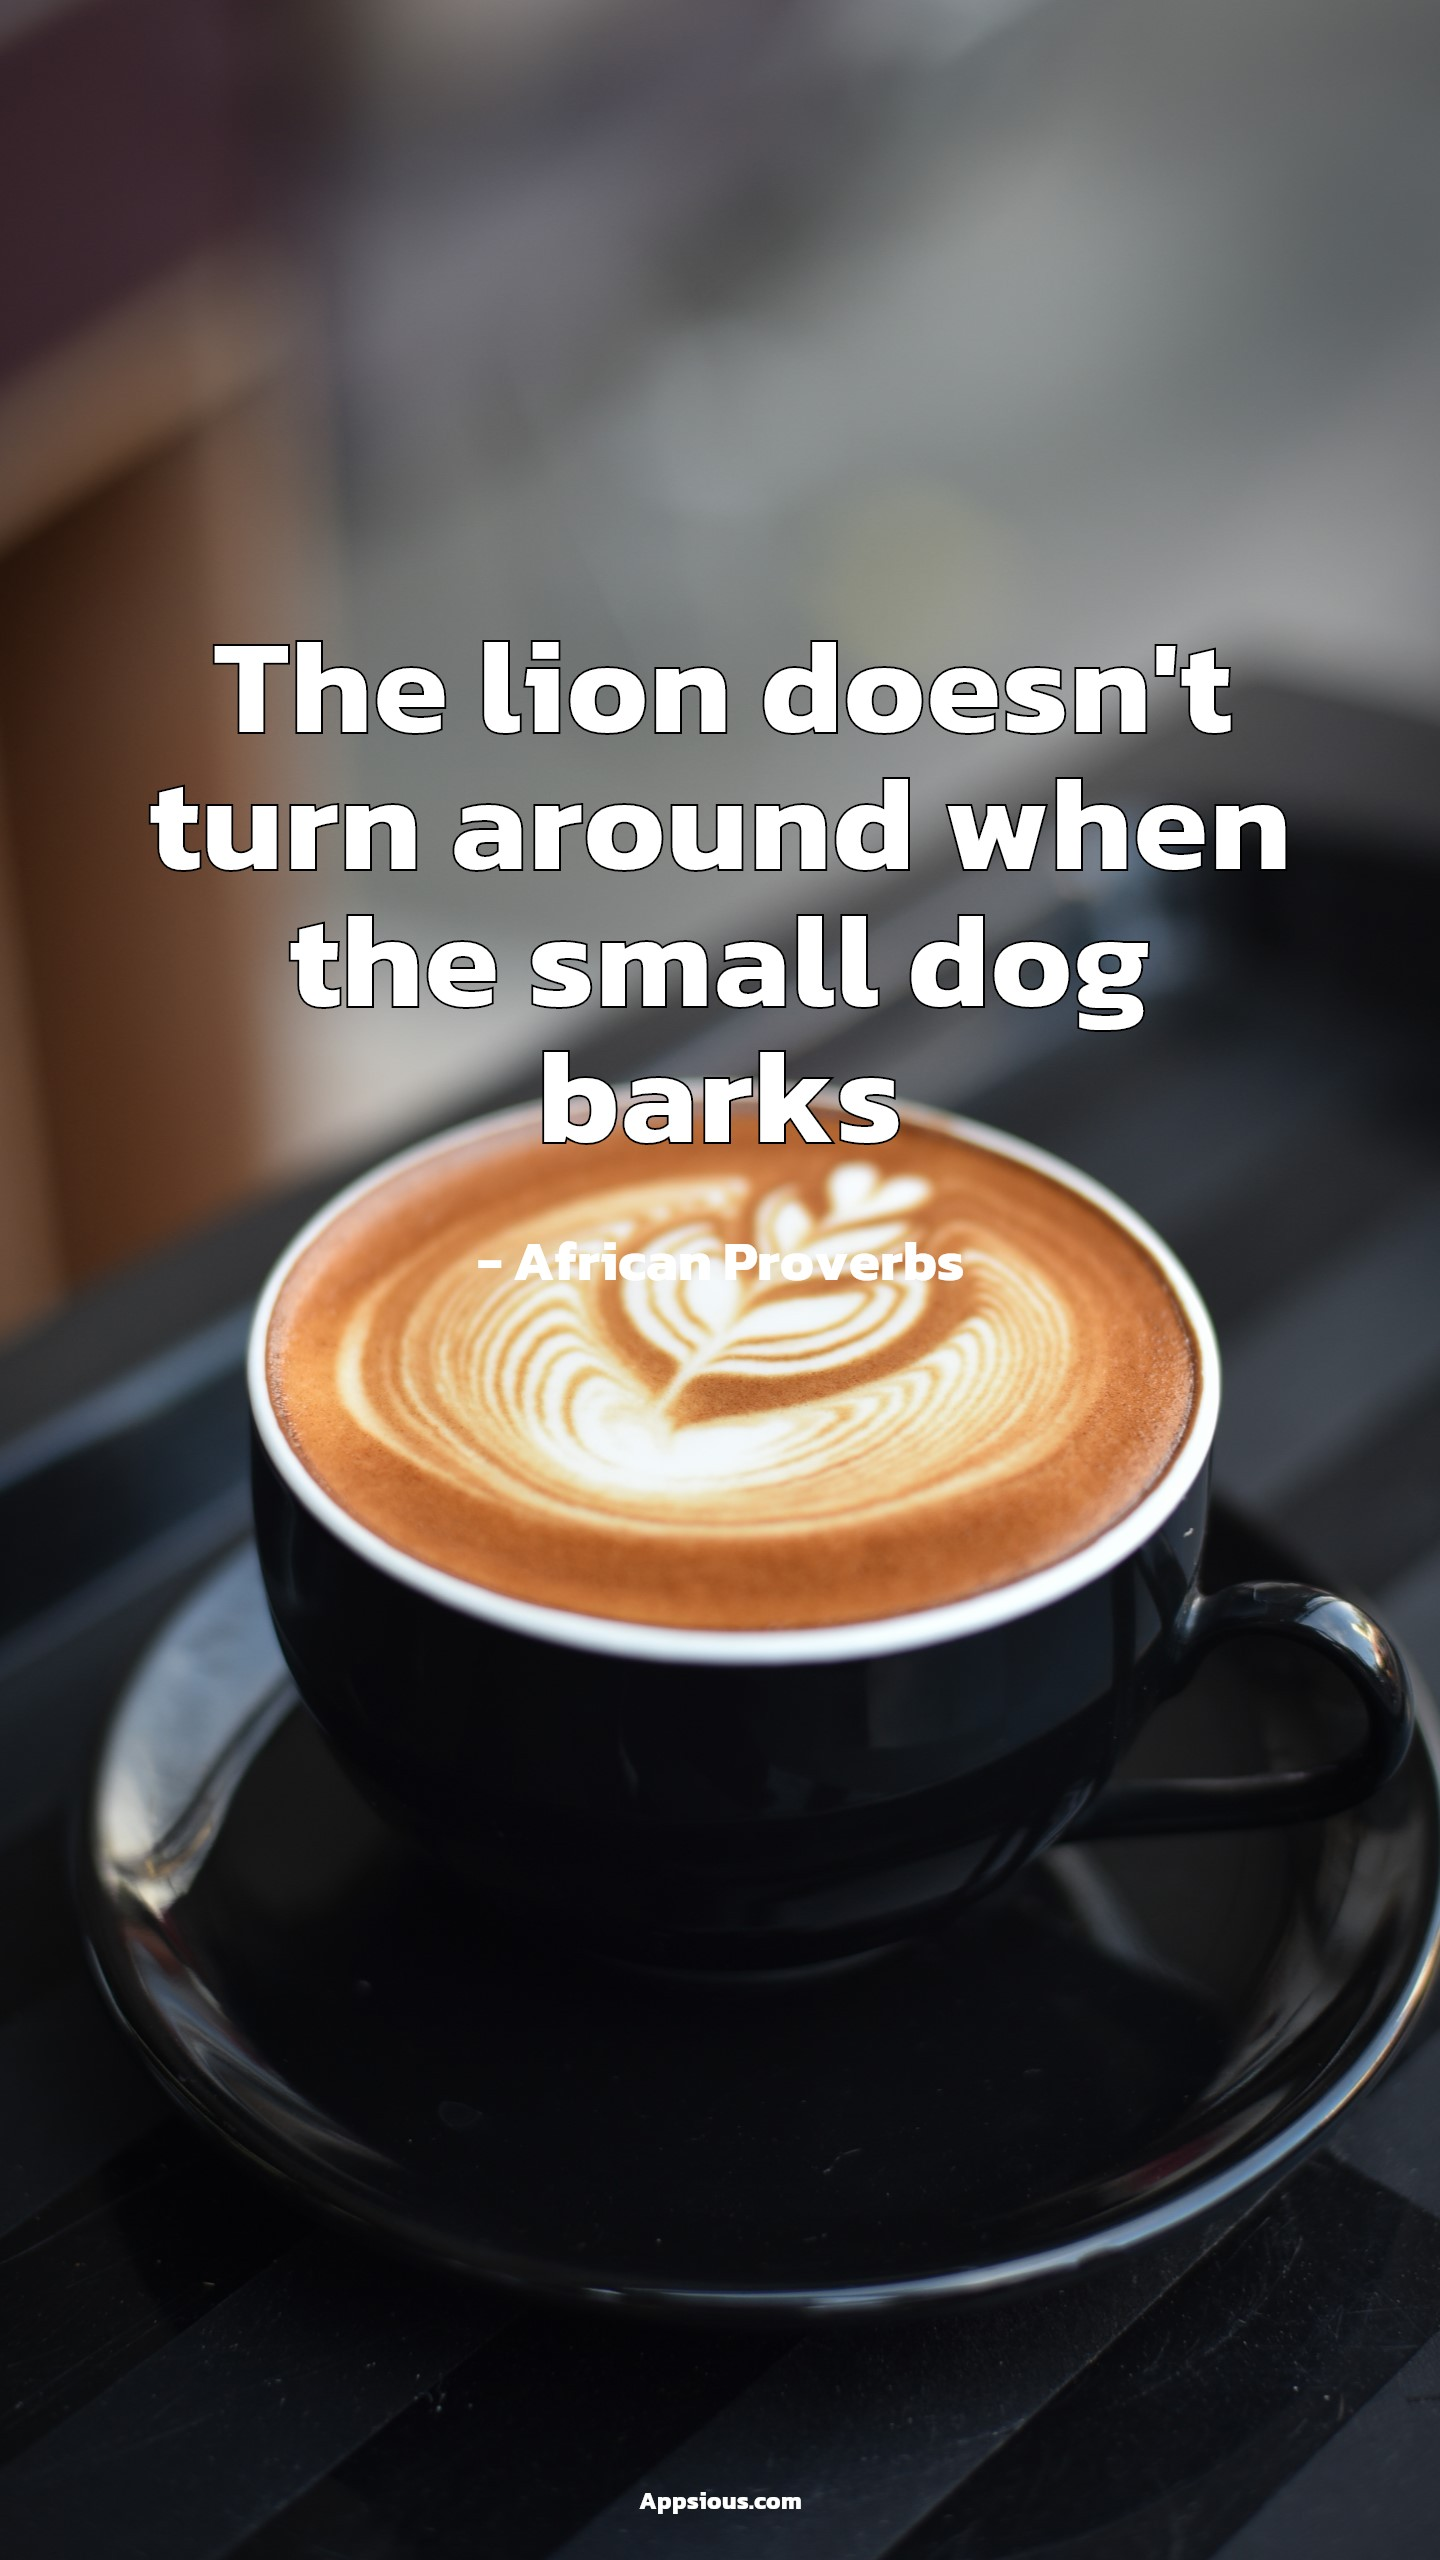 The lion doesn't turn around when the small dog barks